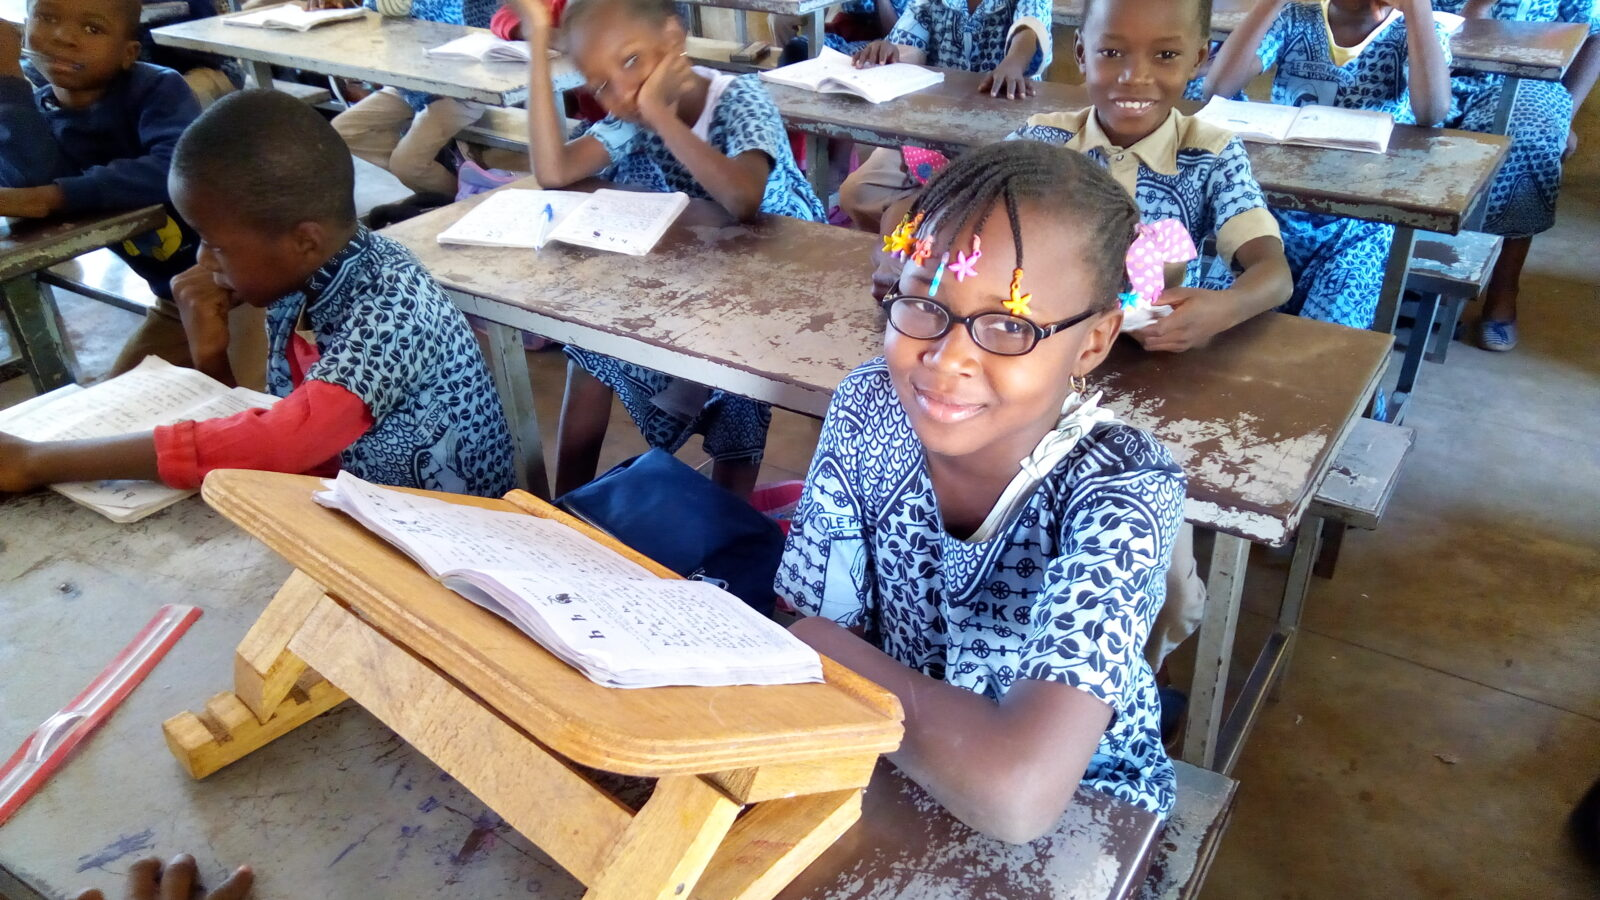 A young girl is sitting at a desk in a classroom with other pupils.